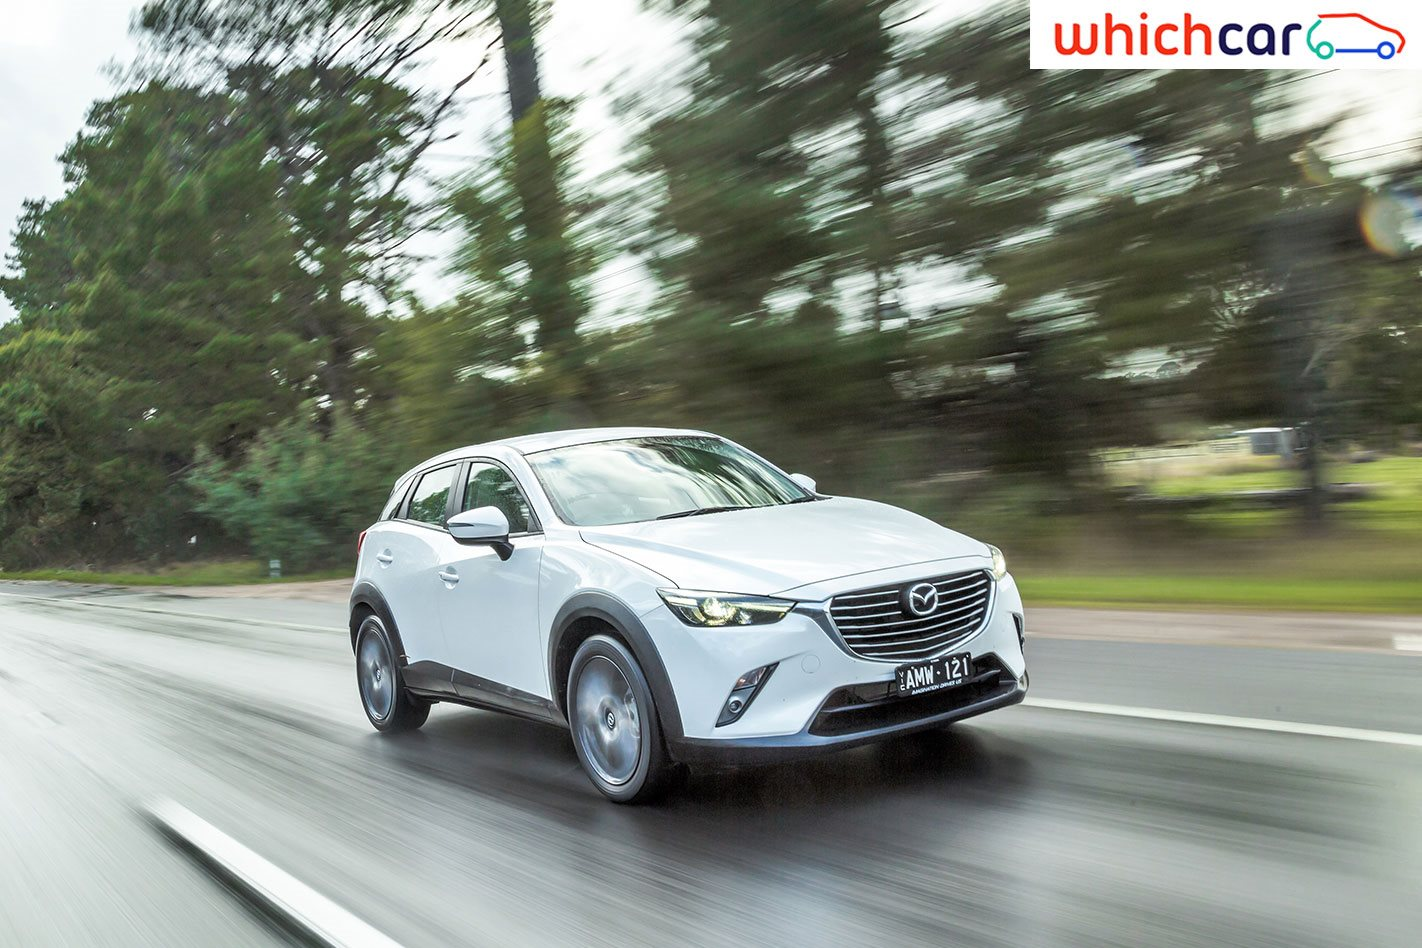 2017 mazda cx 3 grand touring review australia cars for you - 2017 Mazda Cx 3 Grand Touring Review Australia Cars For You 74